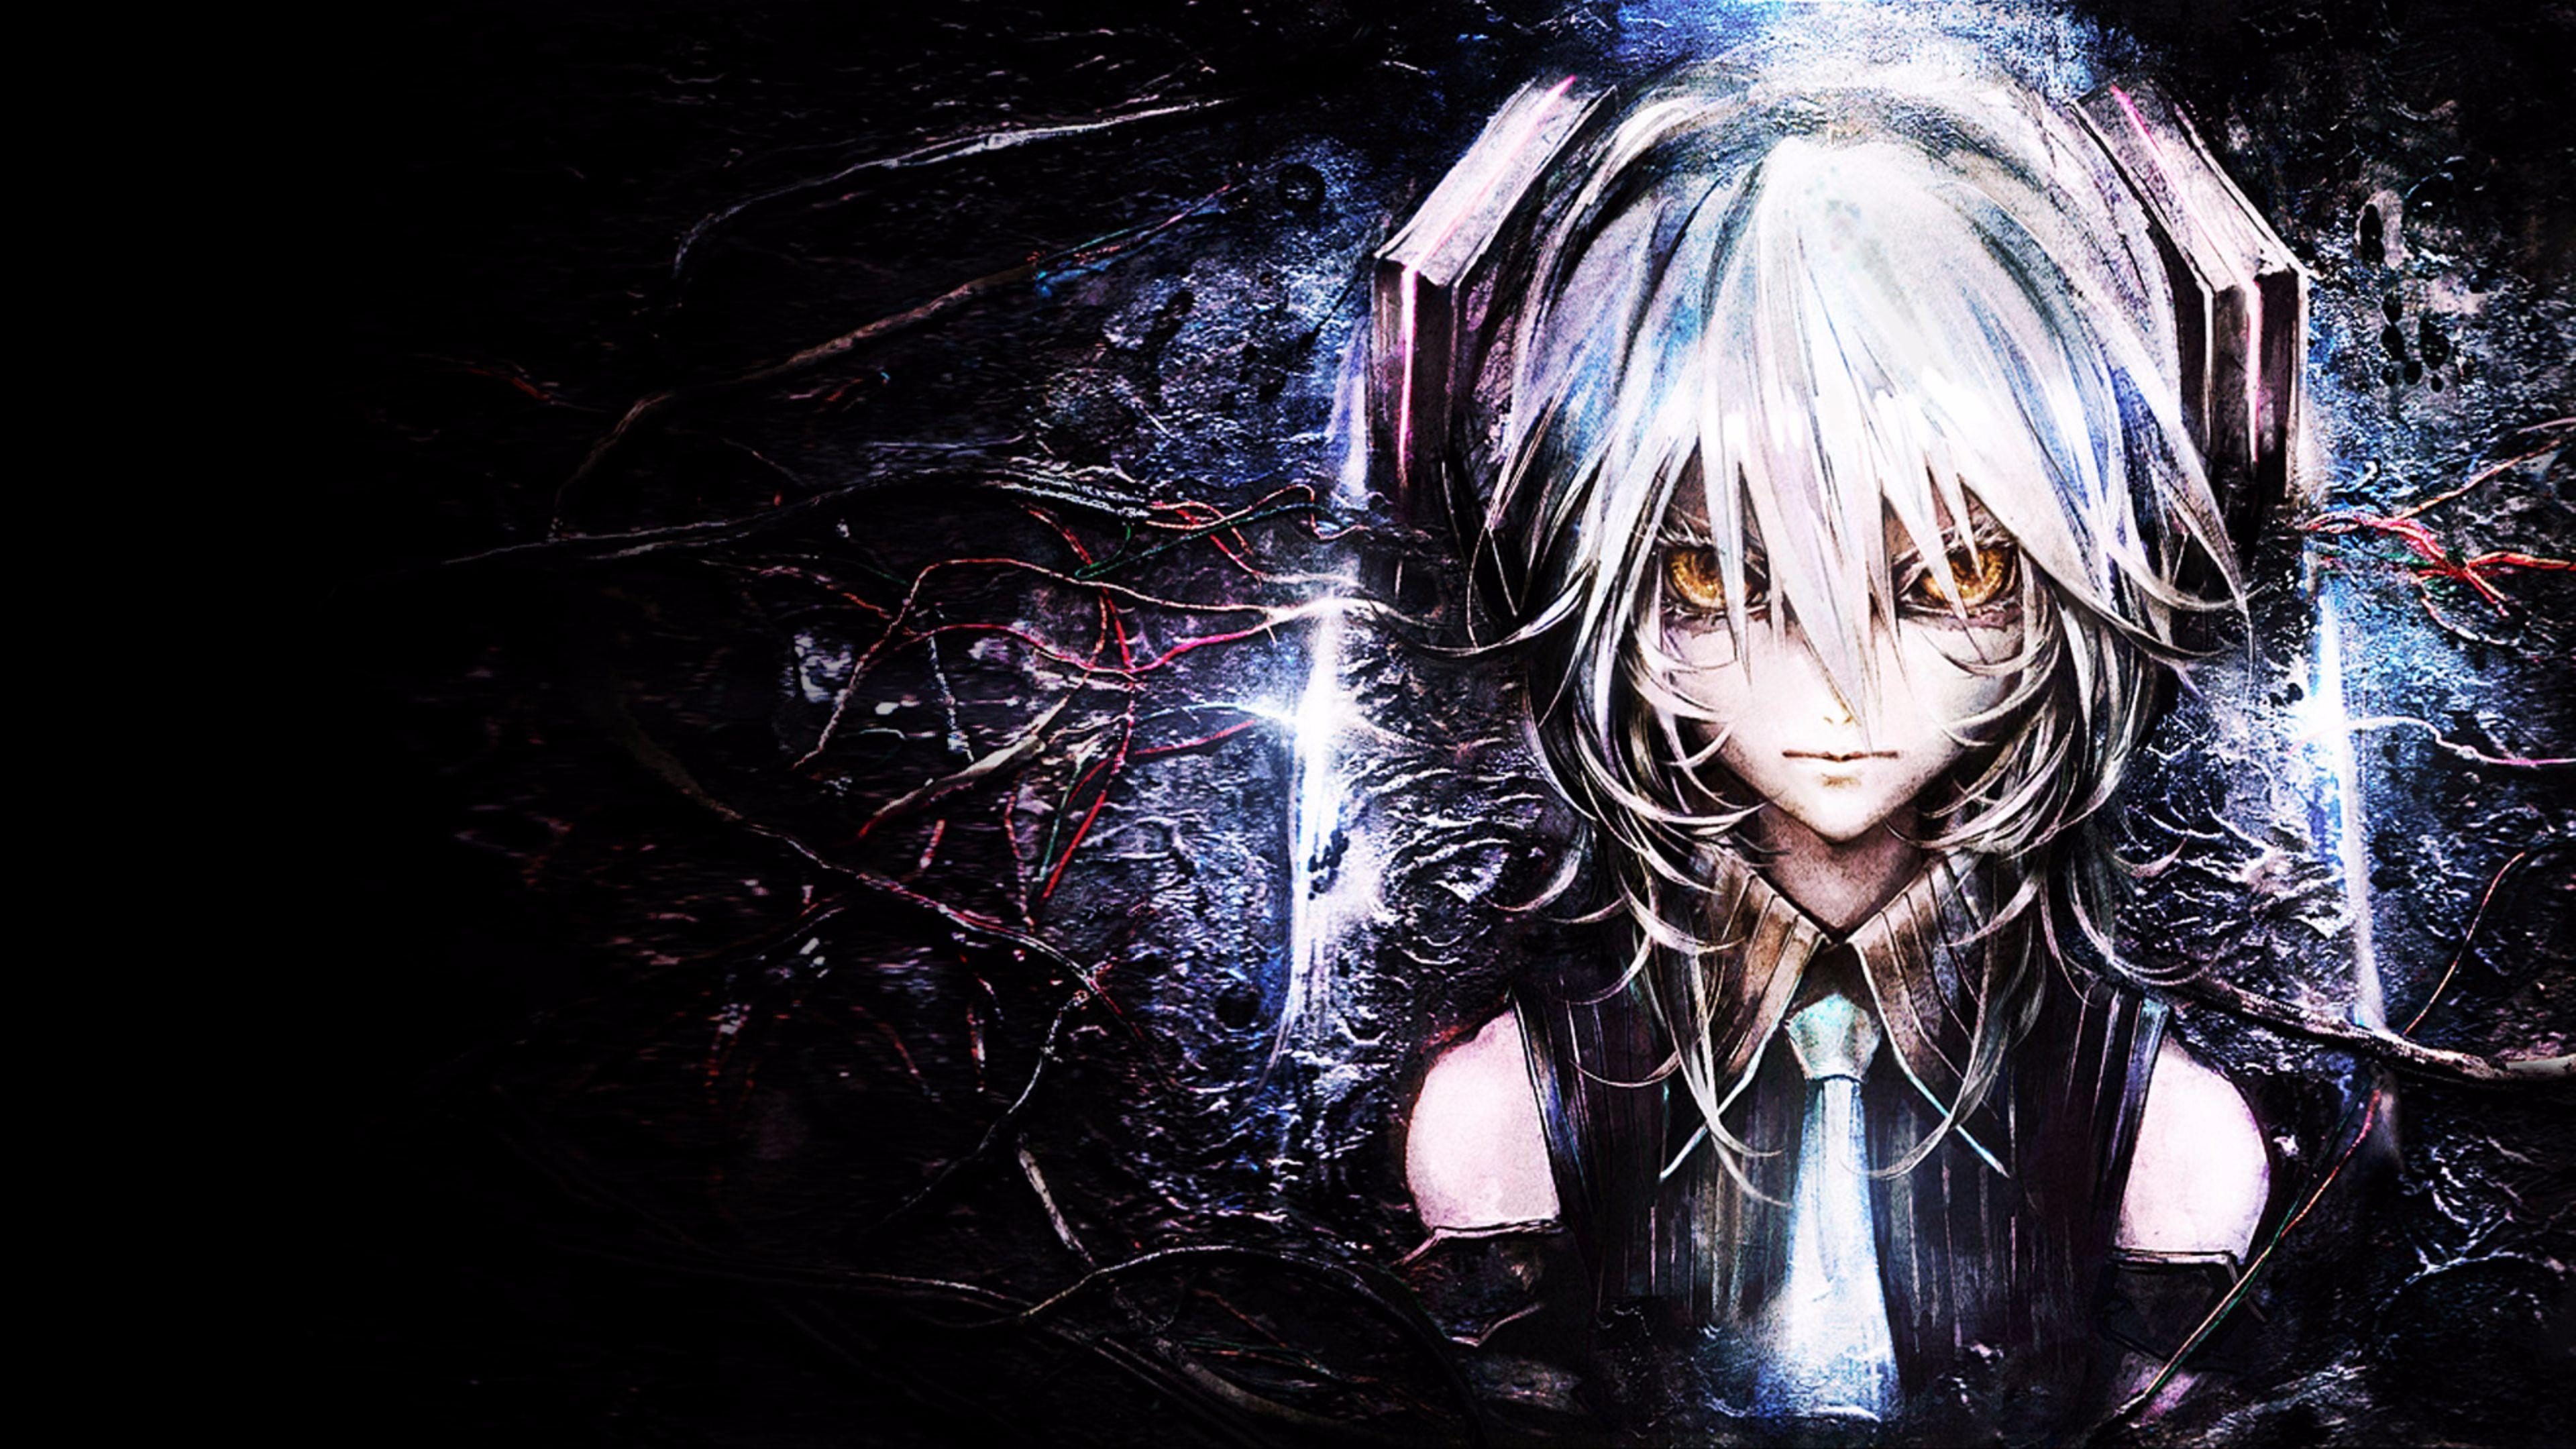 Anime Wallpapers 2016 - Wallpaper Cave